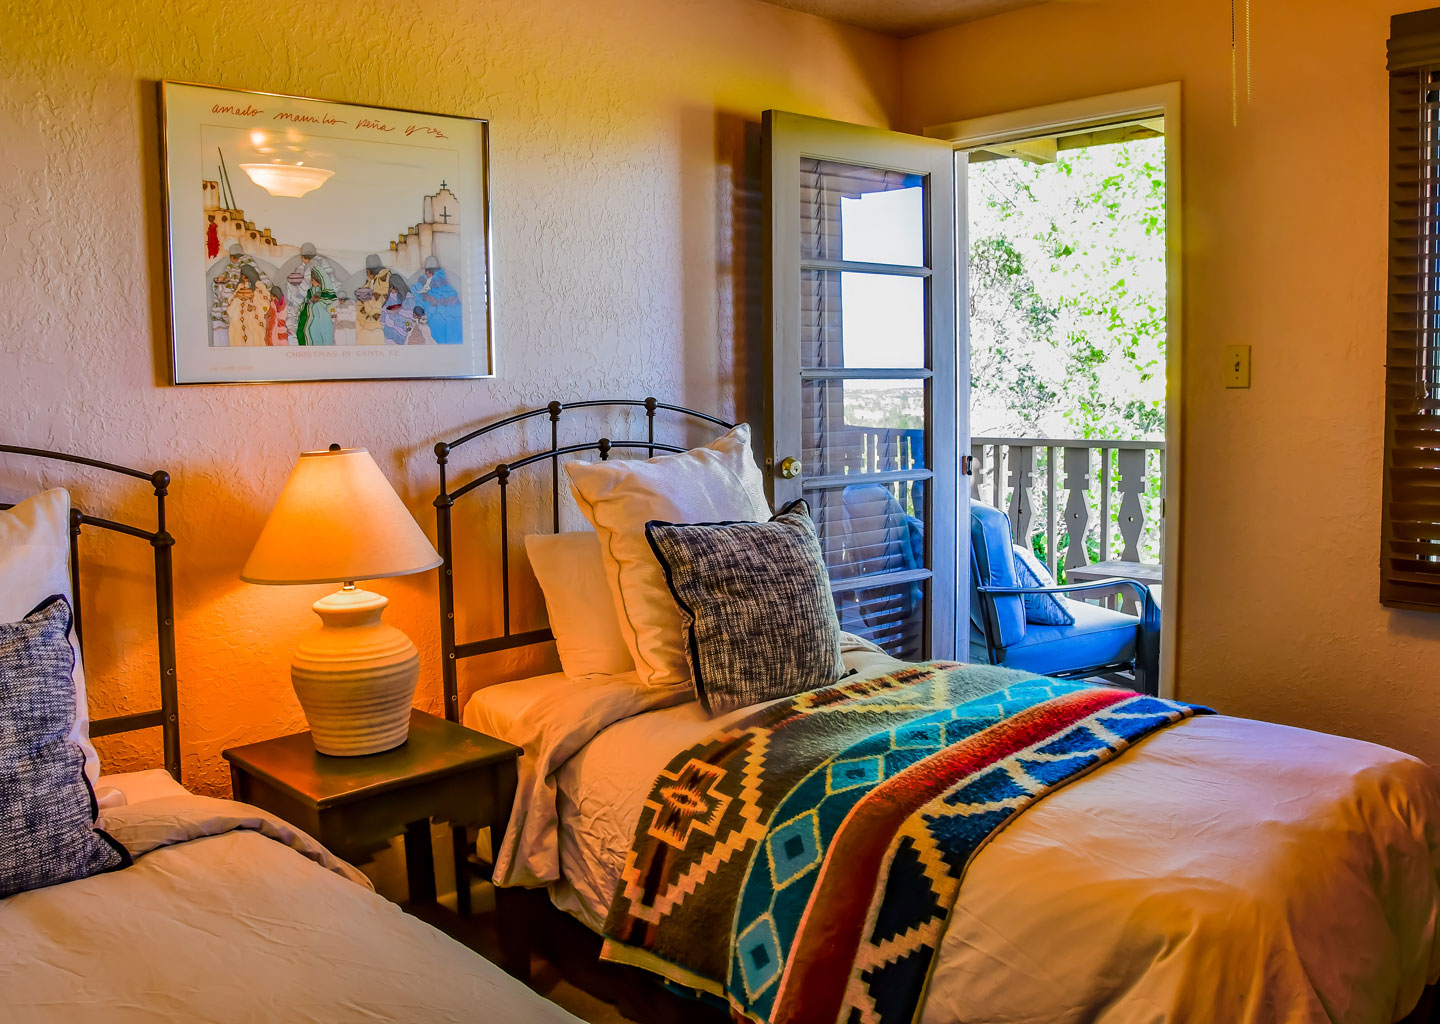 Deluxe 3-bedroom at Fort Marcy Hotel Suites